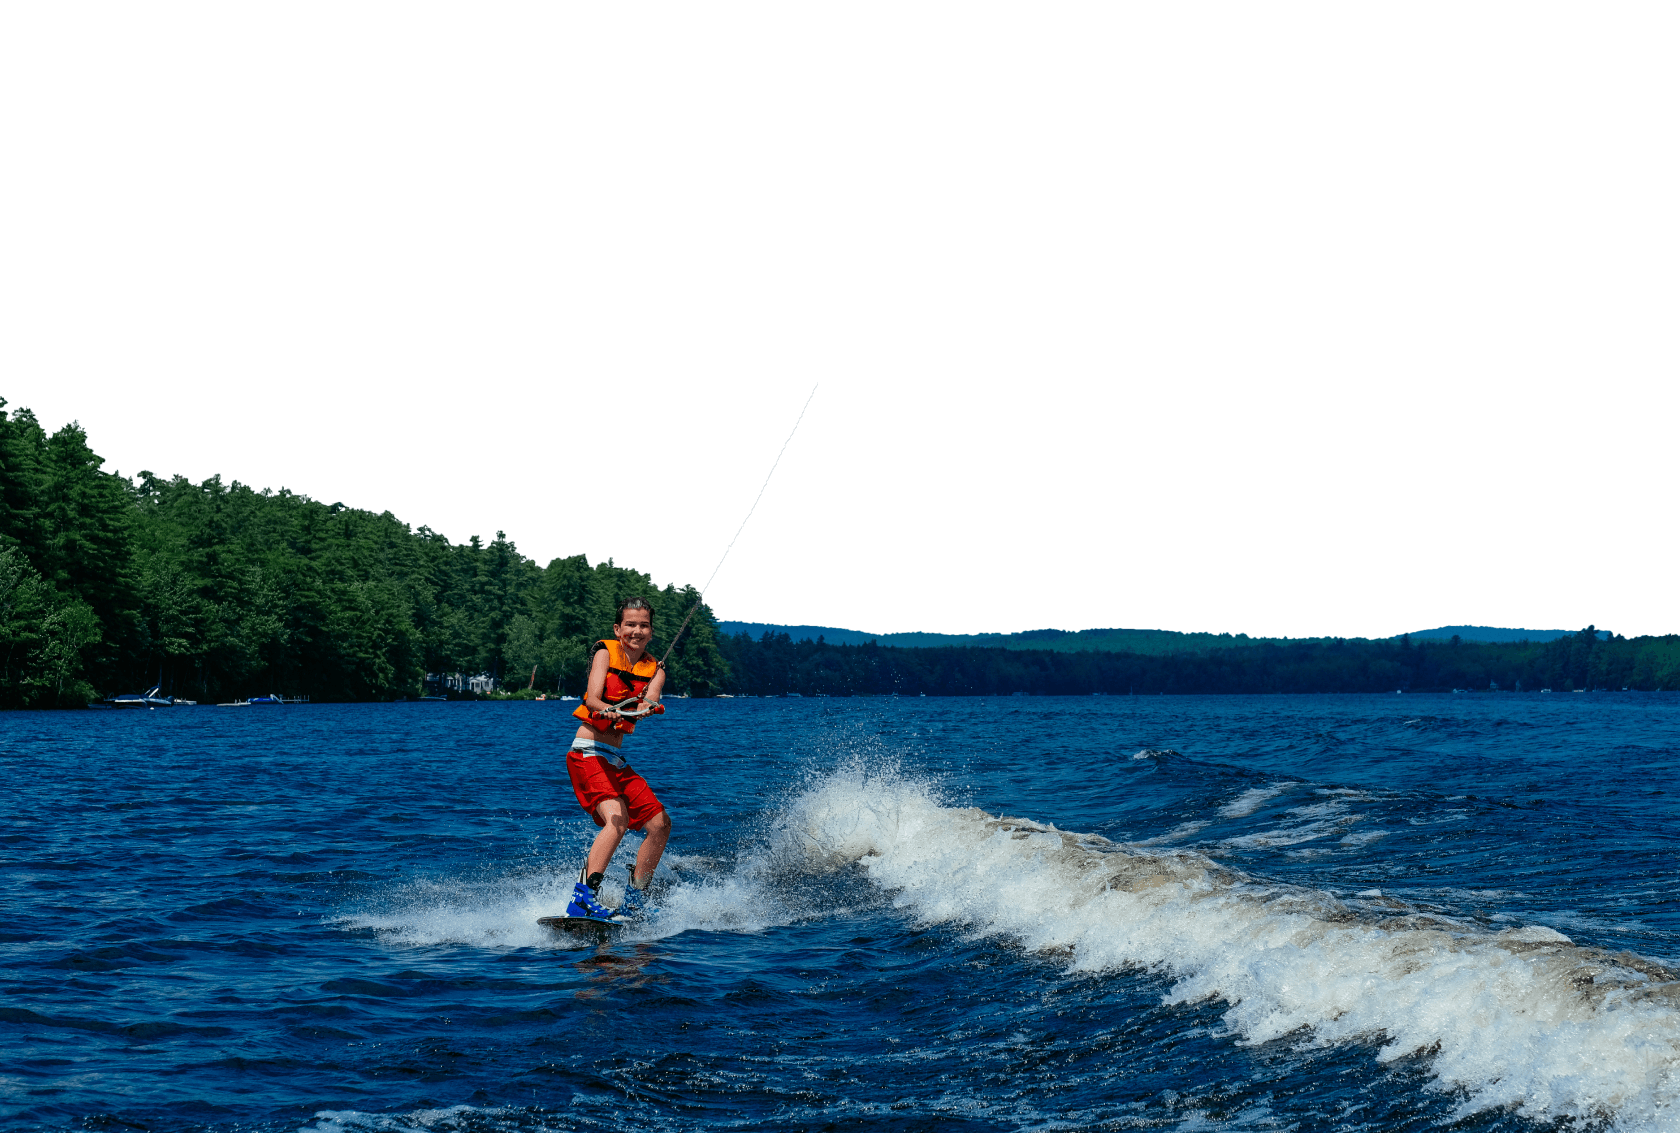 camper waterskiing